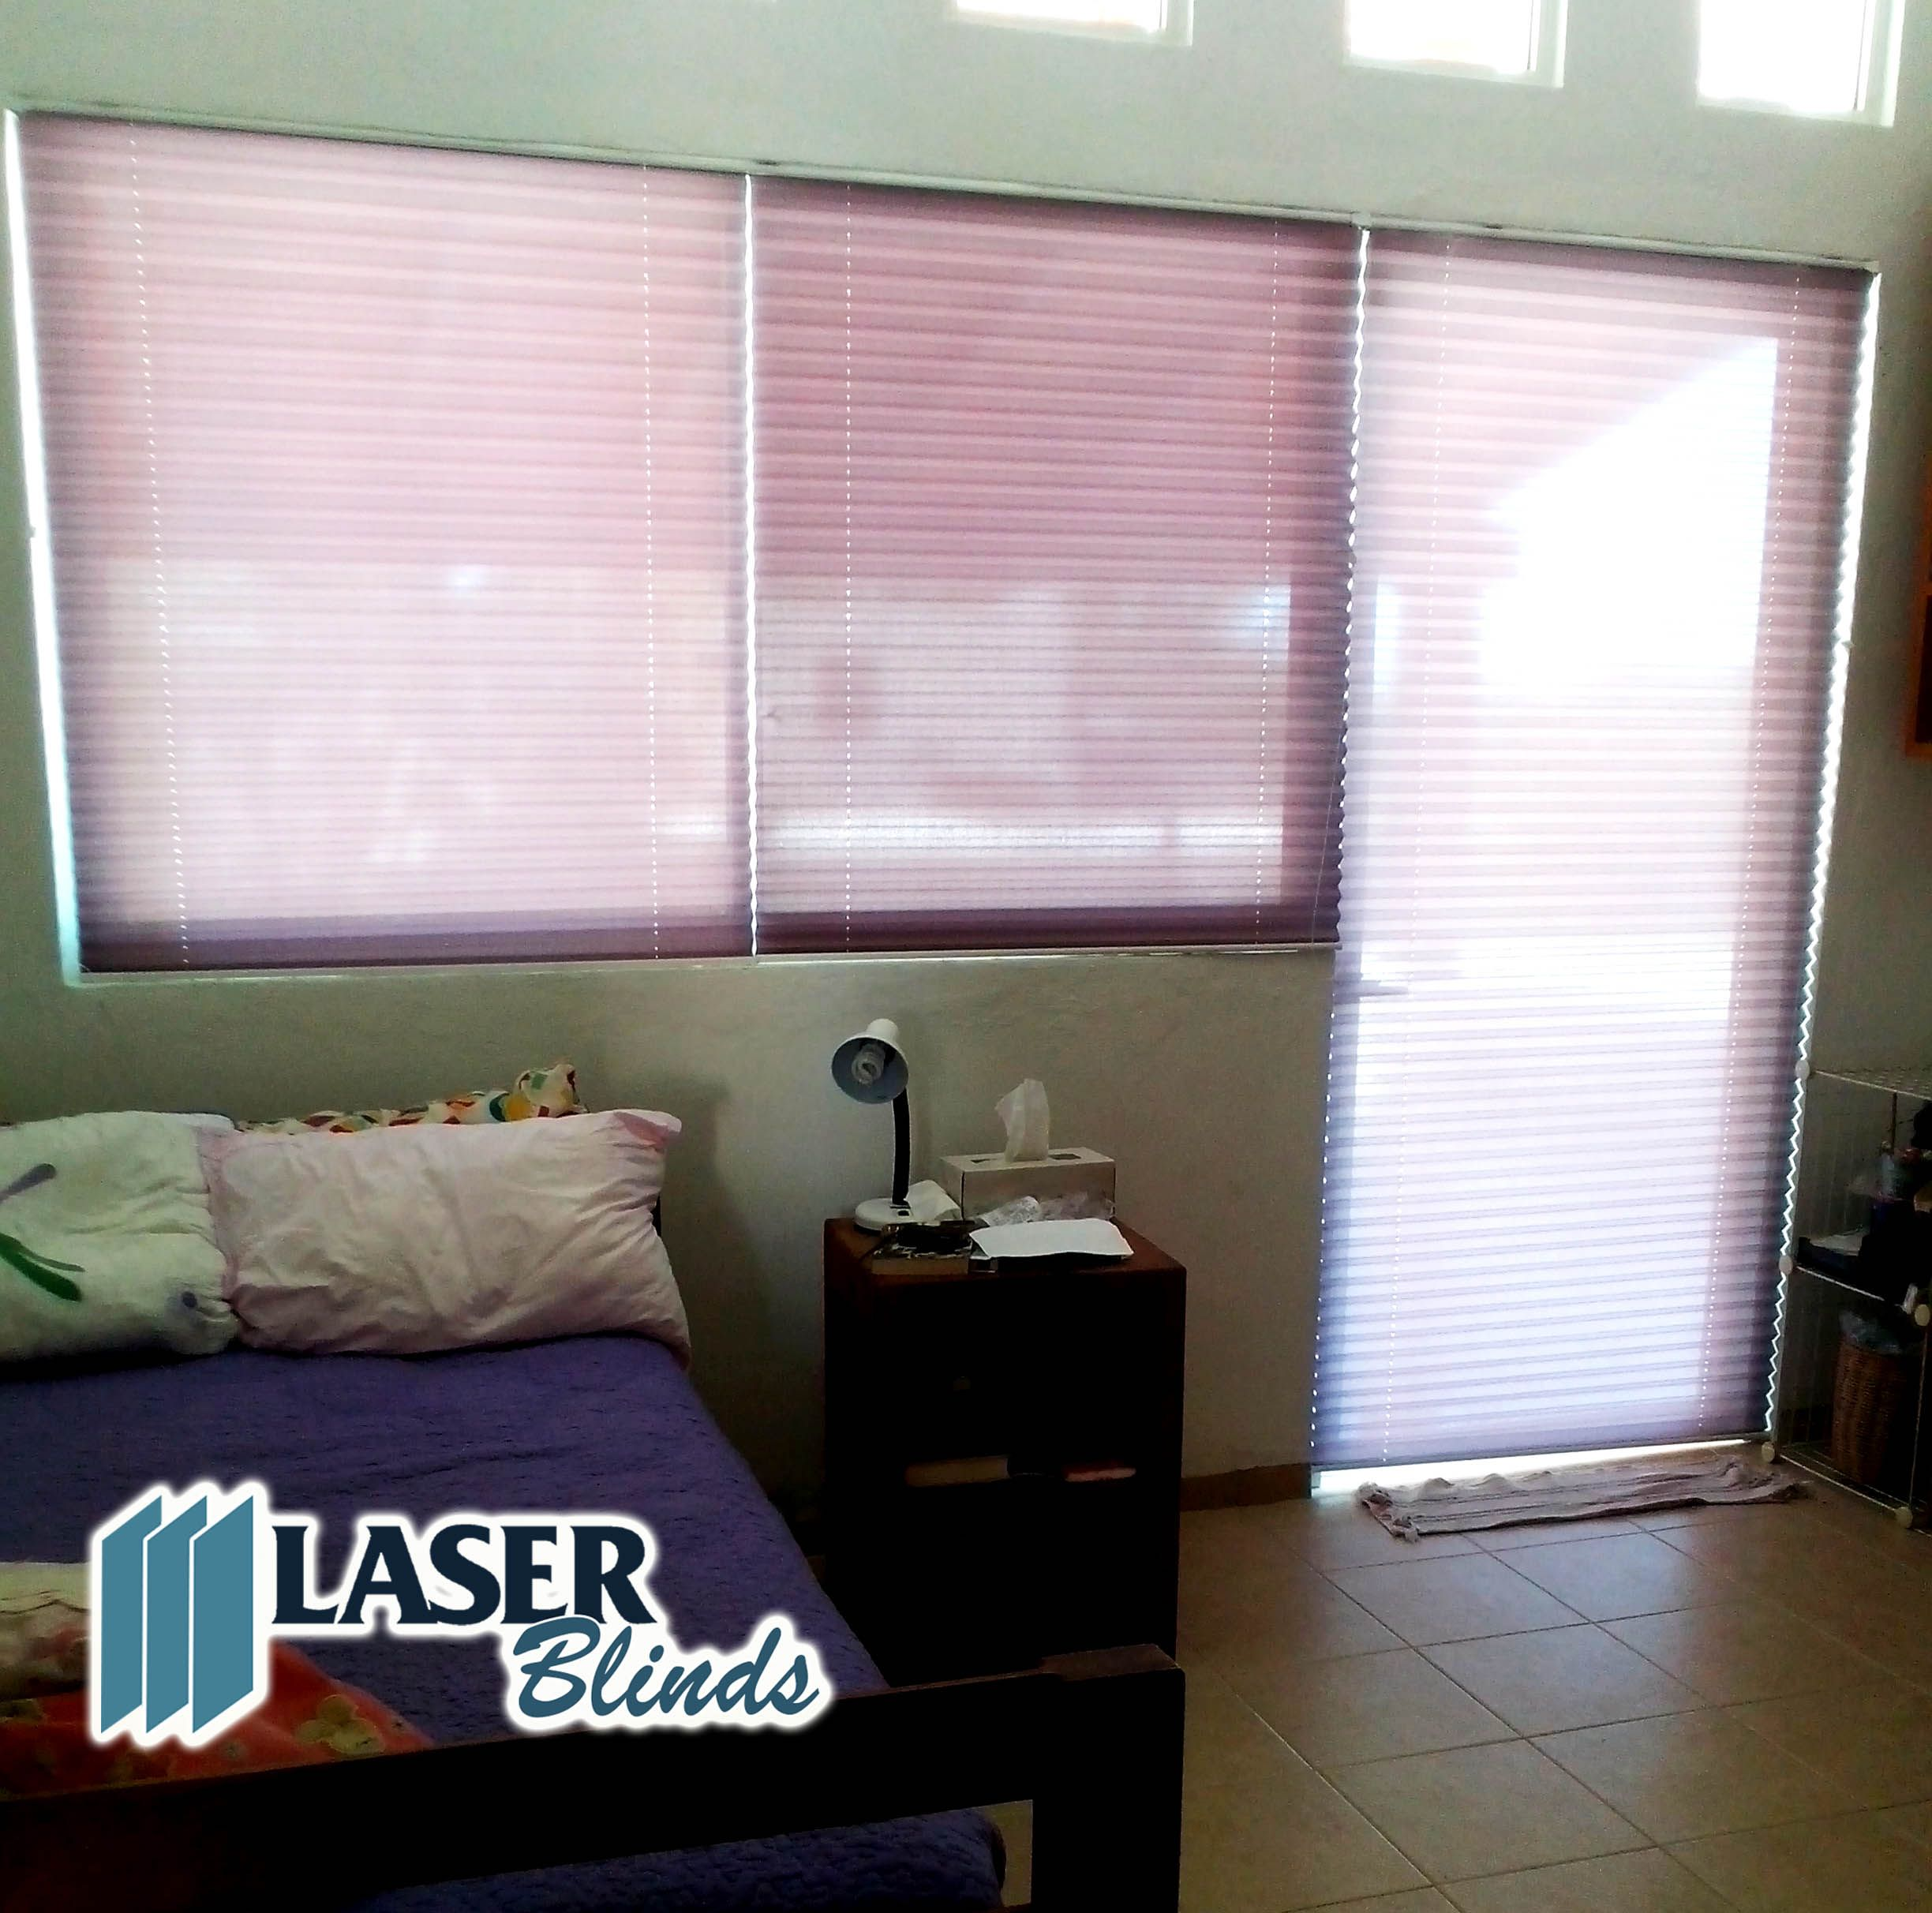 Persiana Celular traslucida decor decoracion hogar cortinas